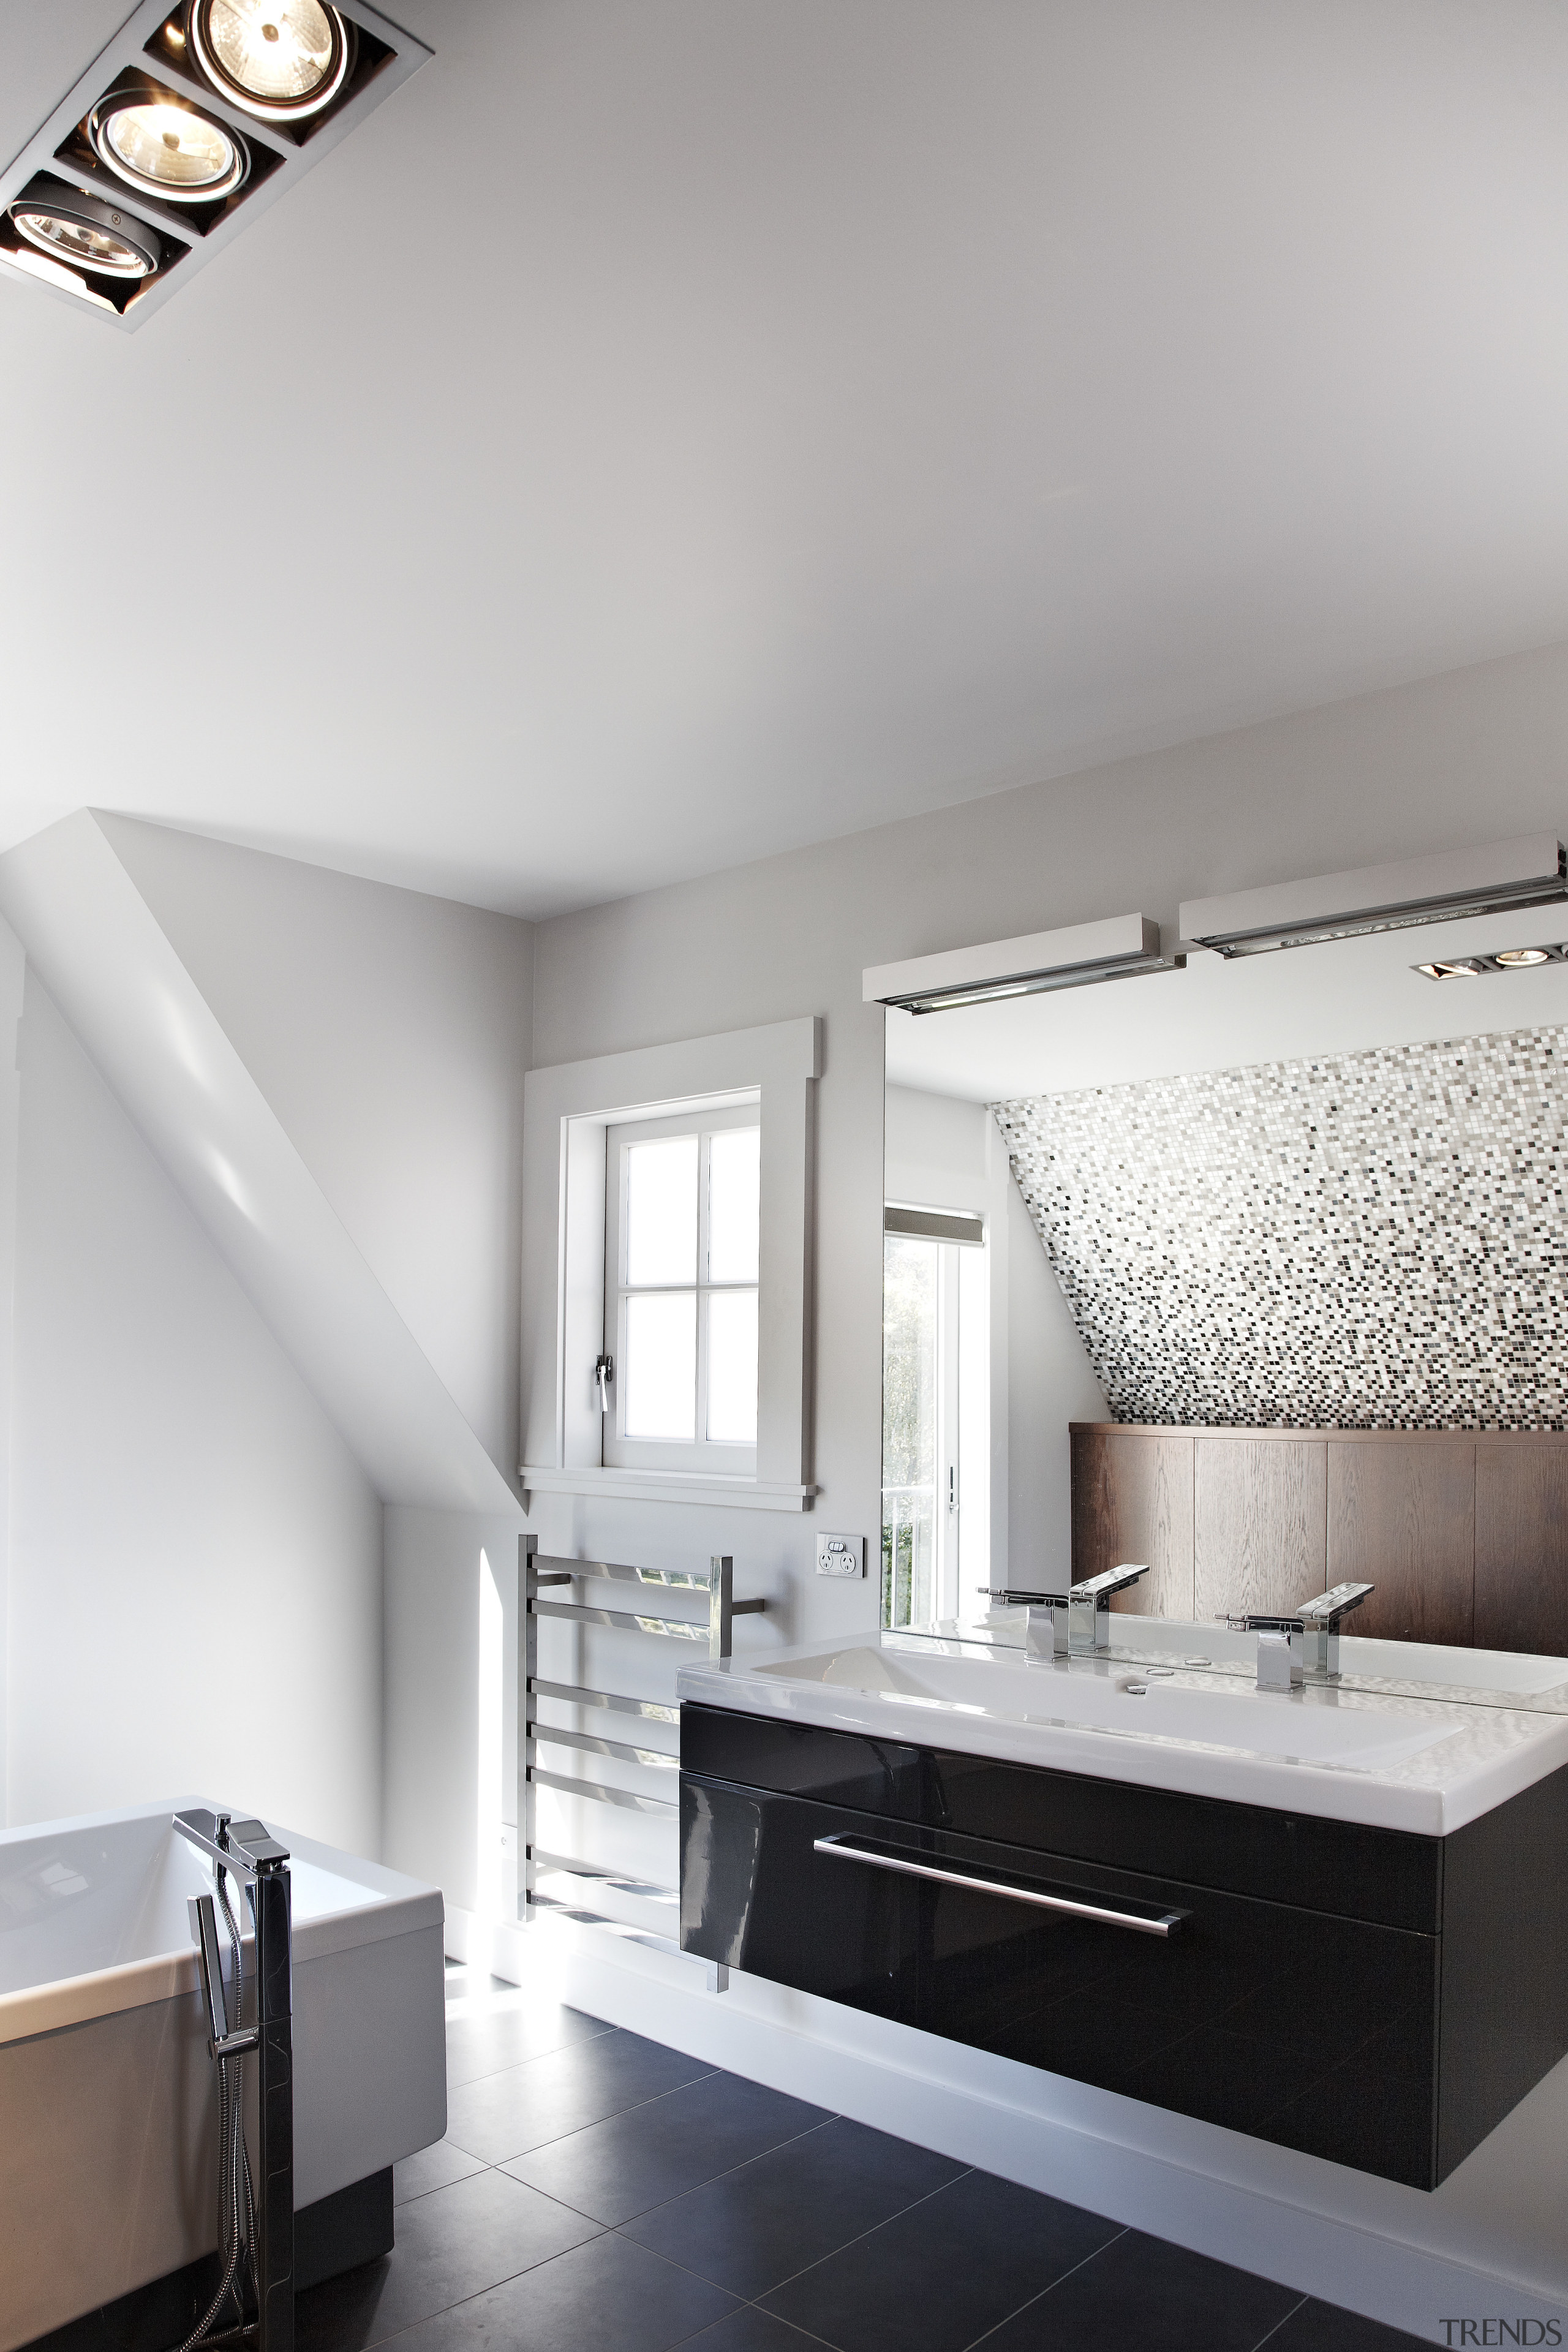 The houses architecture echoes the existing Arts and architecture, bathroom, ceiling, daylighting, floor, home, interior design, room, sink, tap, wall, gray, white